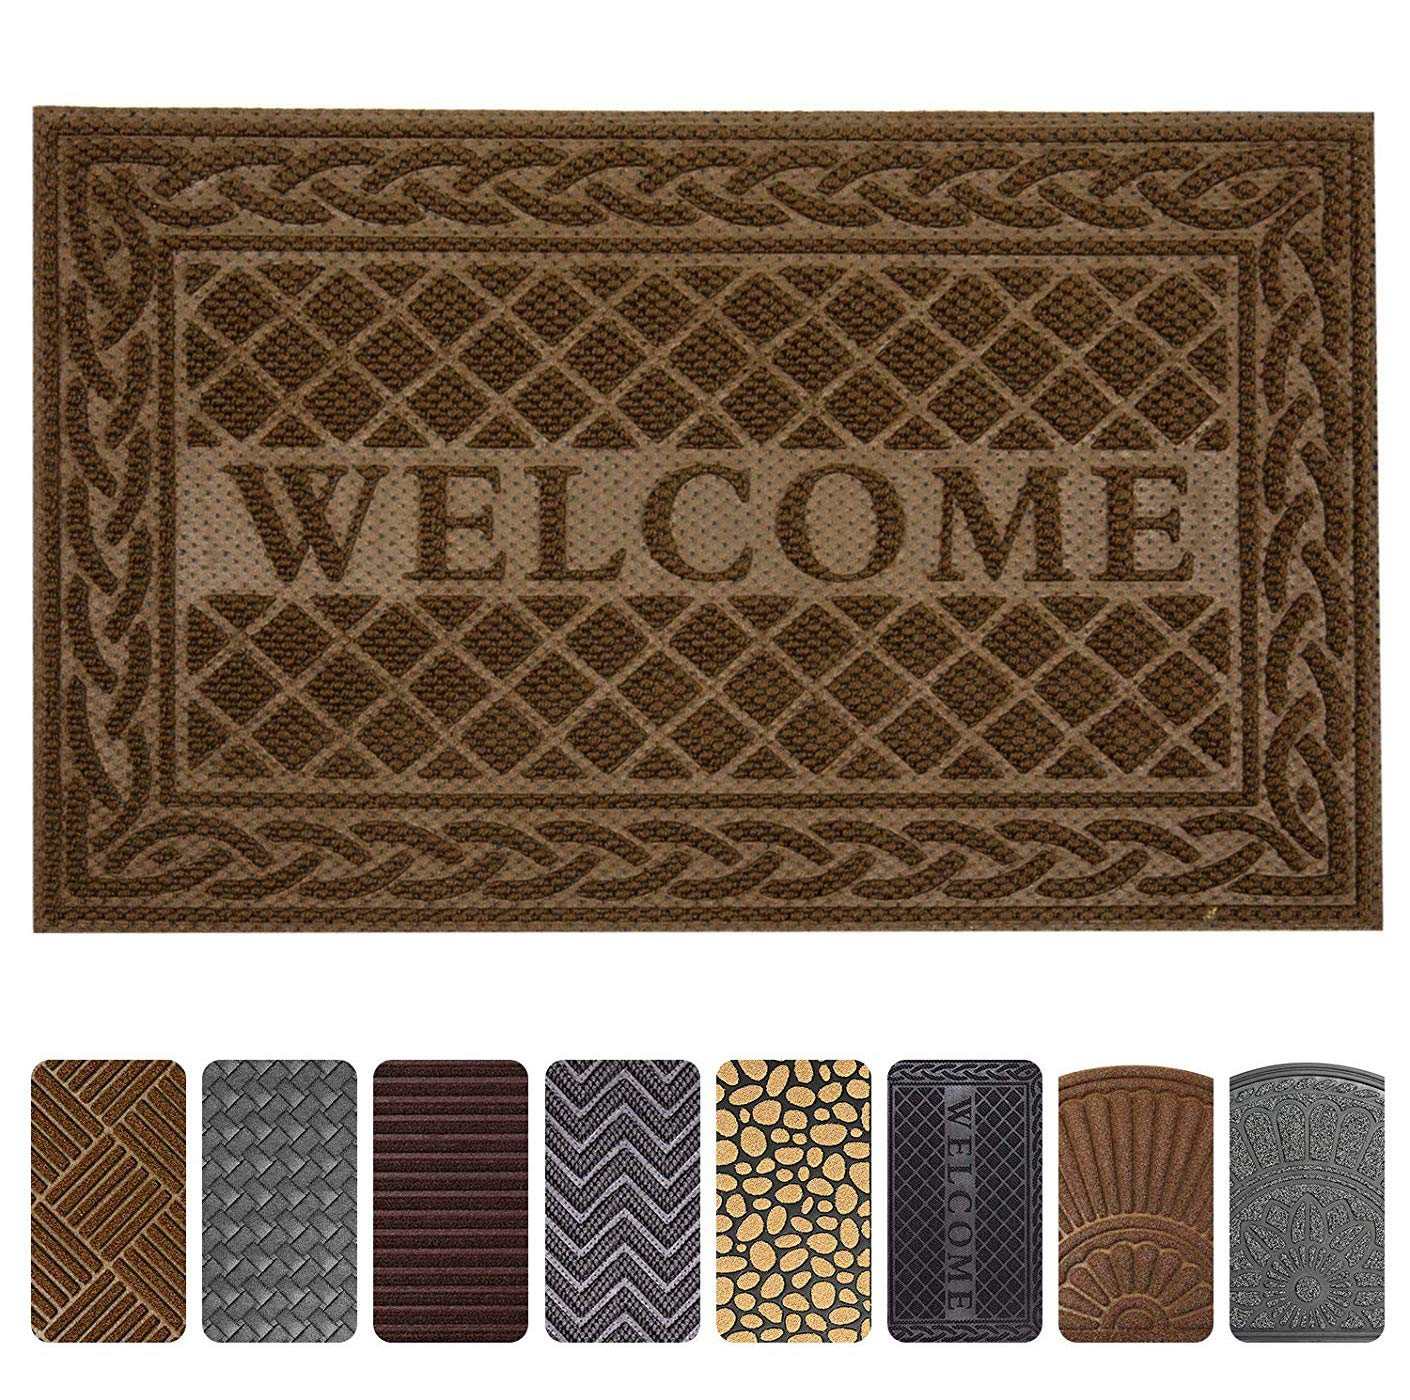 Mibao Entrance Door Mat, 24 x 36 inch Winter Durable Large Heavy Duty Front Outdoor Rug, Non-Slip Welcome Doormat for Entry, Patio